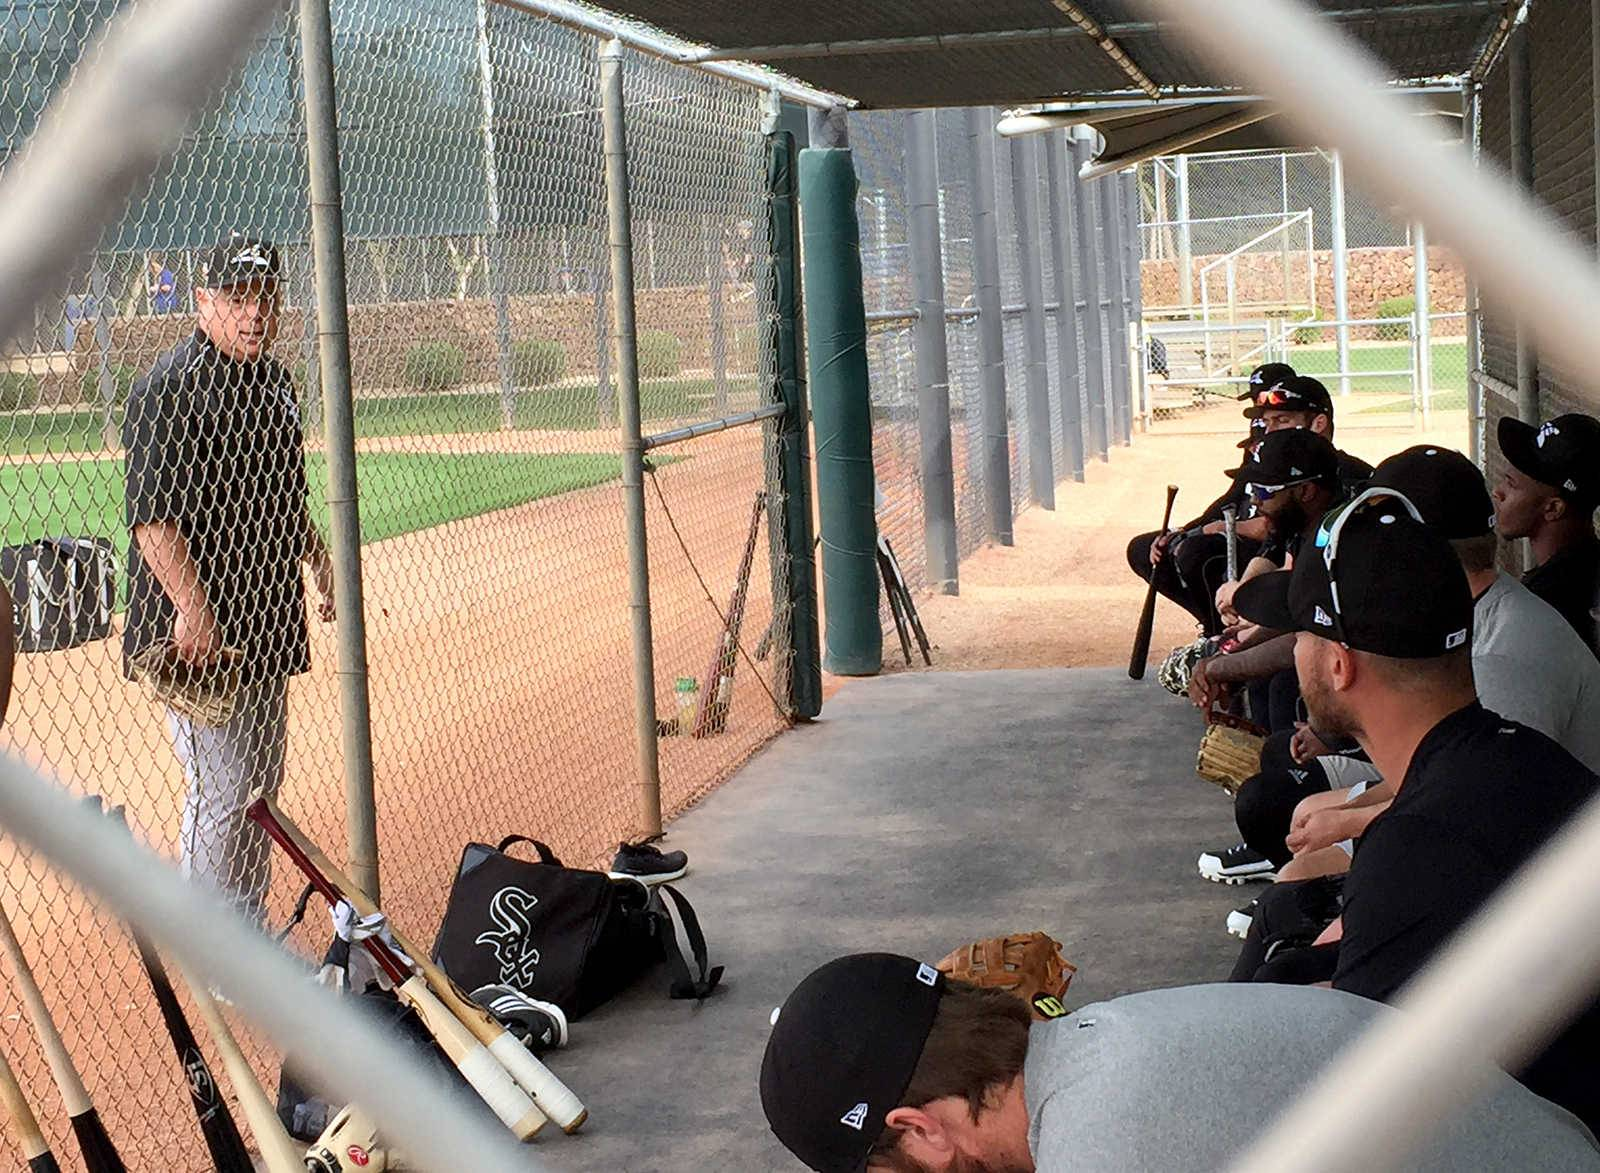 White Sox manager Rick Renteria gives his hitters a pep talk before batting practice gets underway Friday at Camelback Ranch.